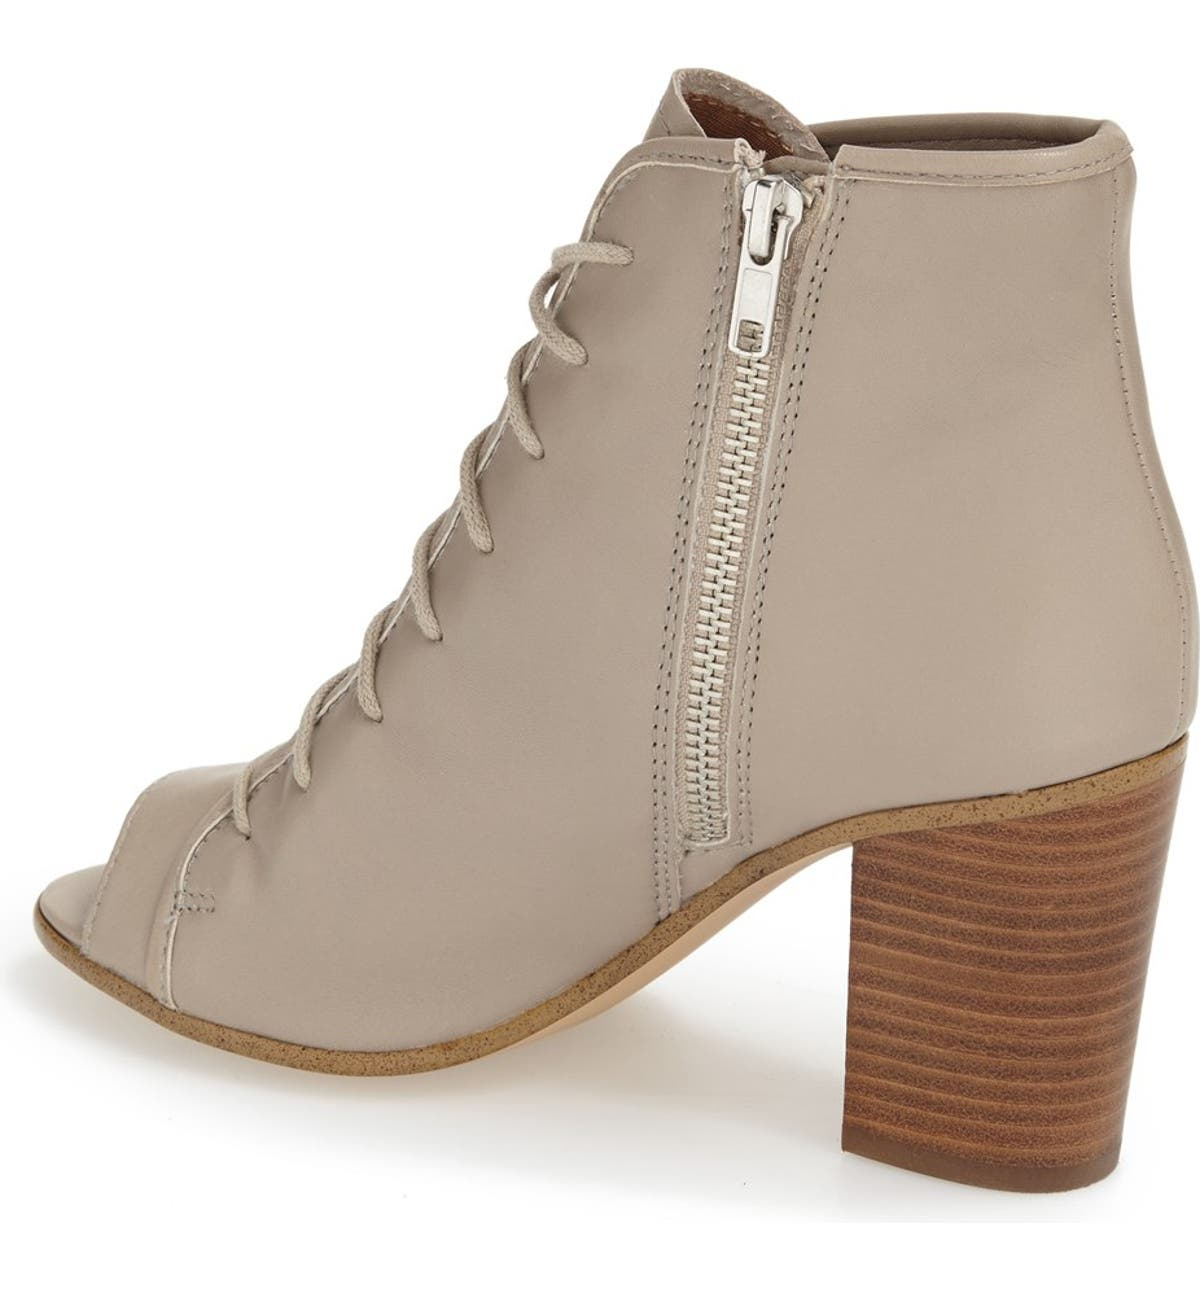 0ad7fe3f9dc 'Neela' Lace-Up Bootie